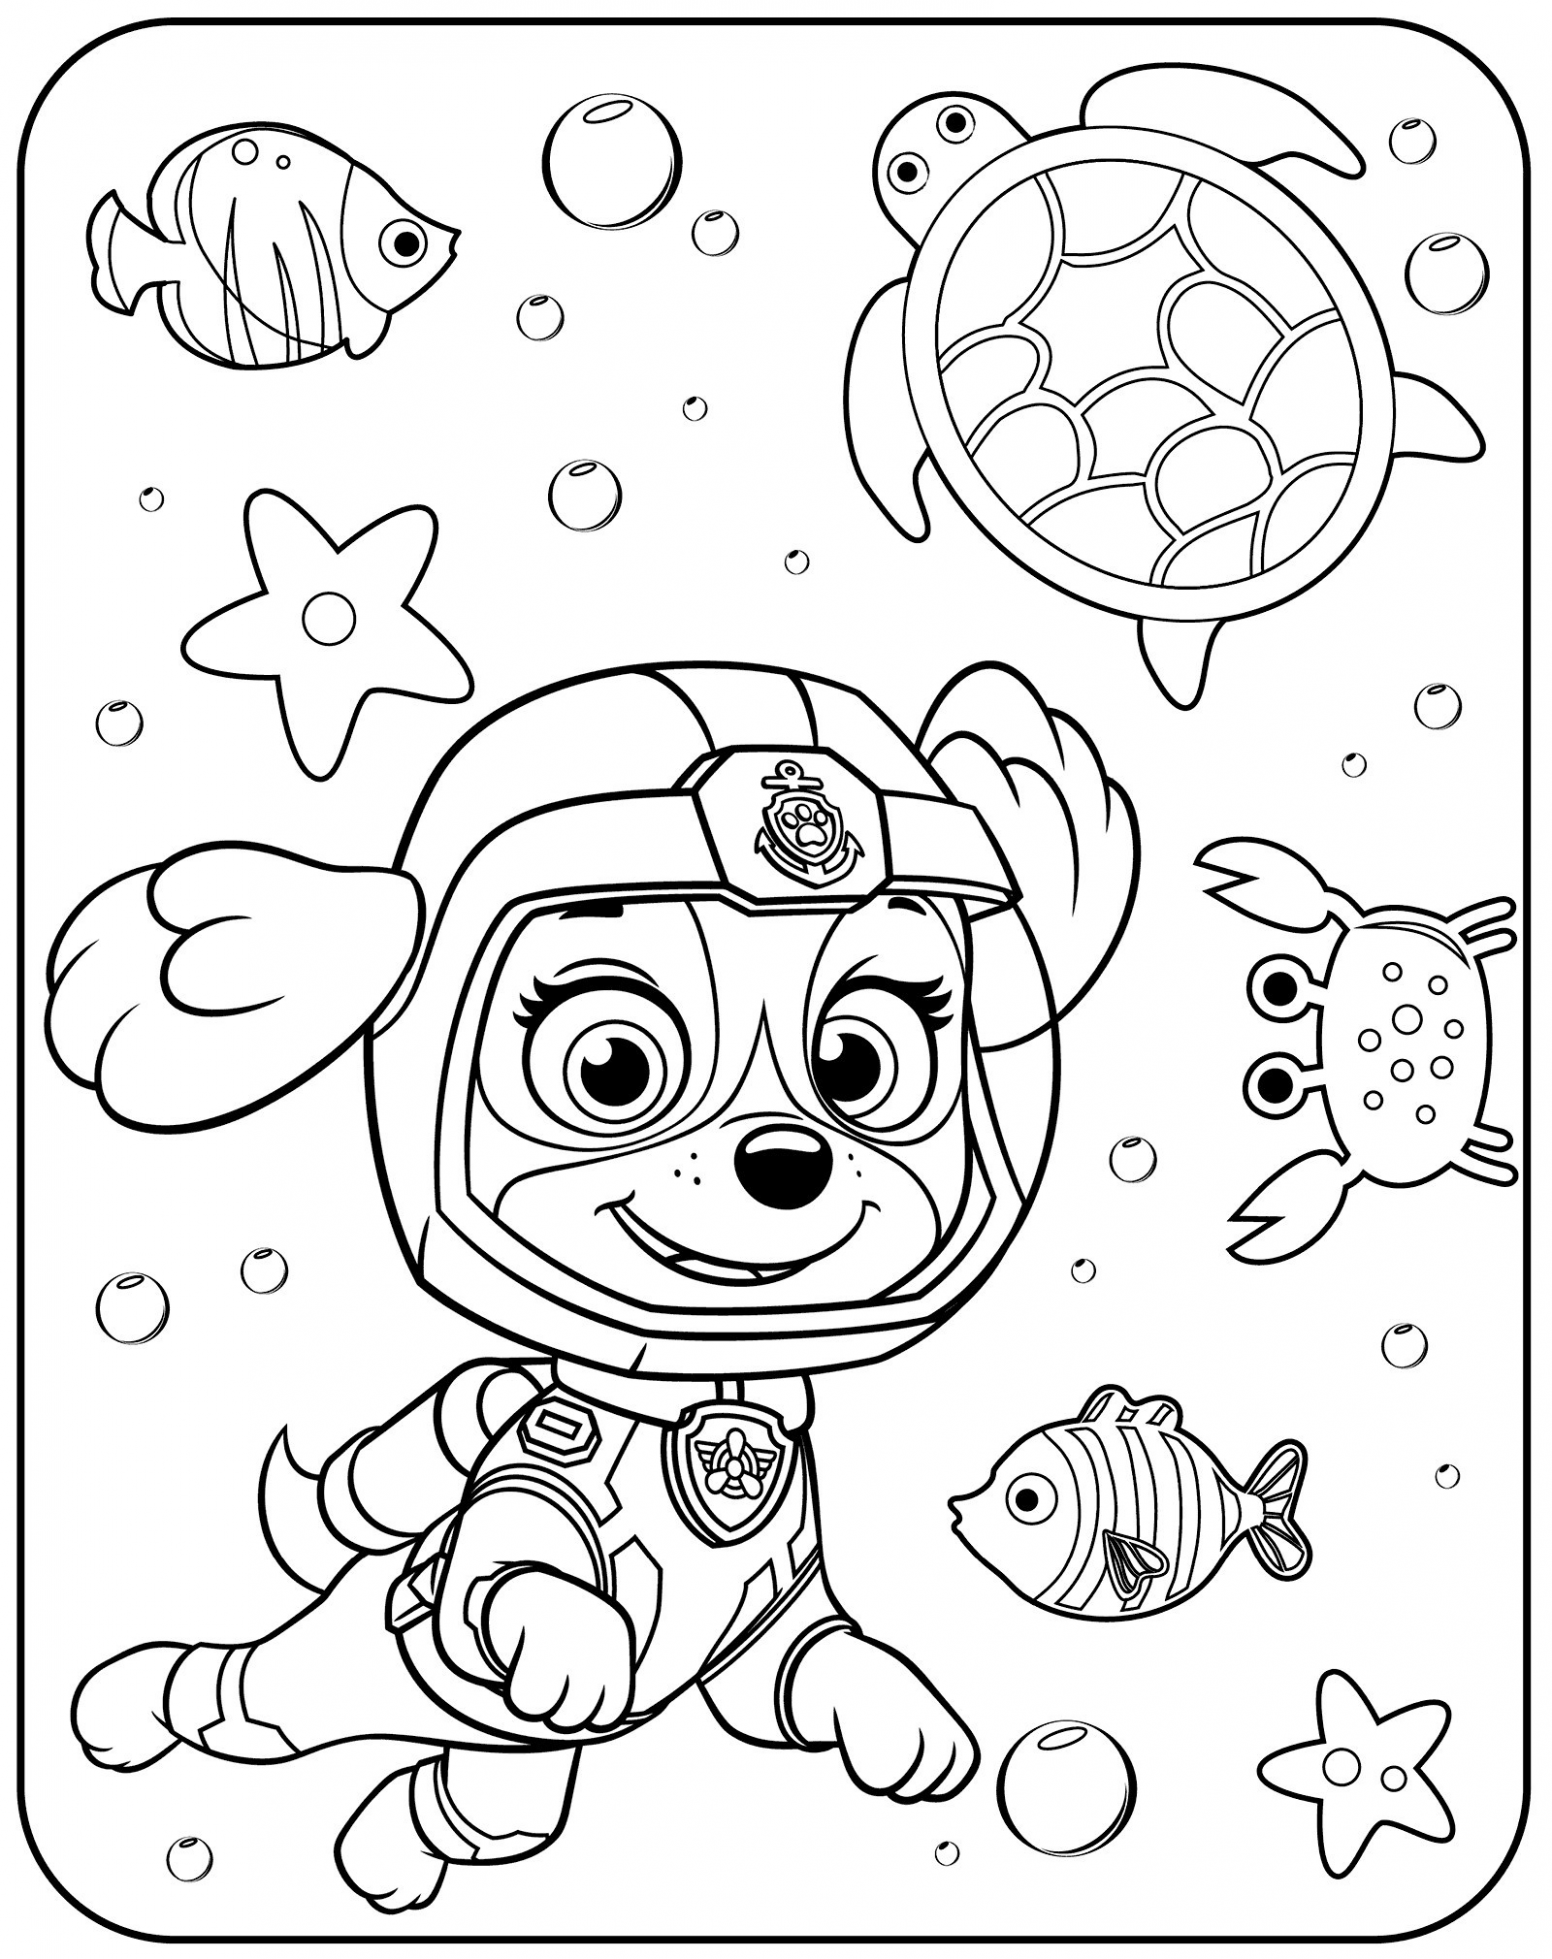 Coloring Ideas : Paw Patrol Games Online Free Printables Party City ...